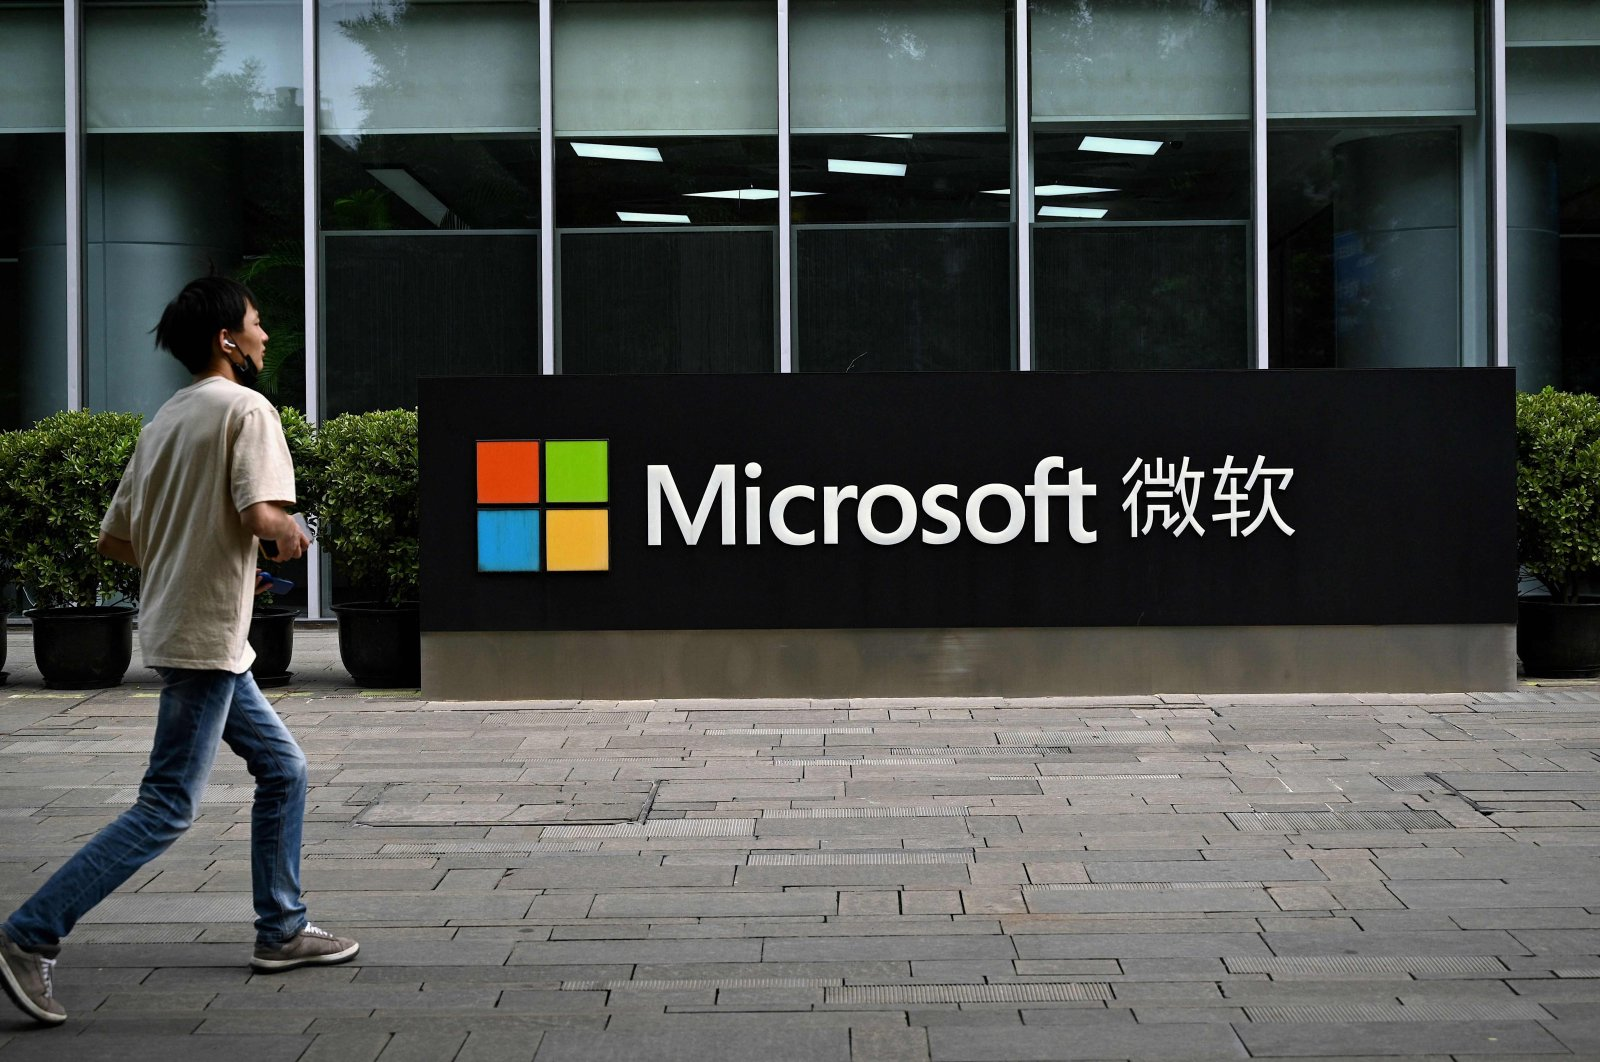 A man walks past Microsoft's local headquarters in Beijing, China, July 20, 2021. (AFP Photo)